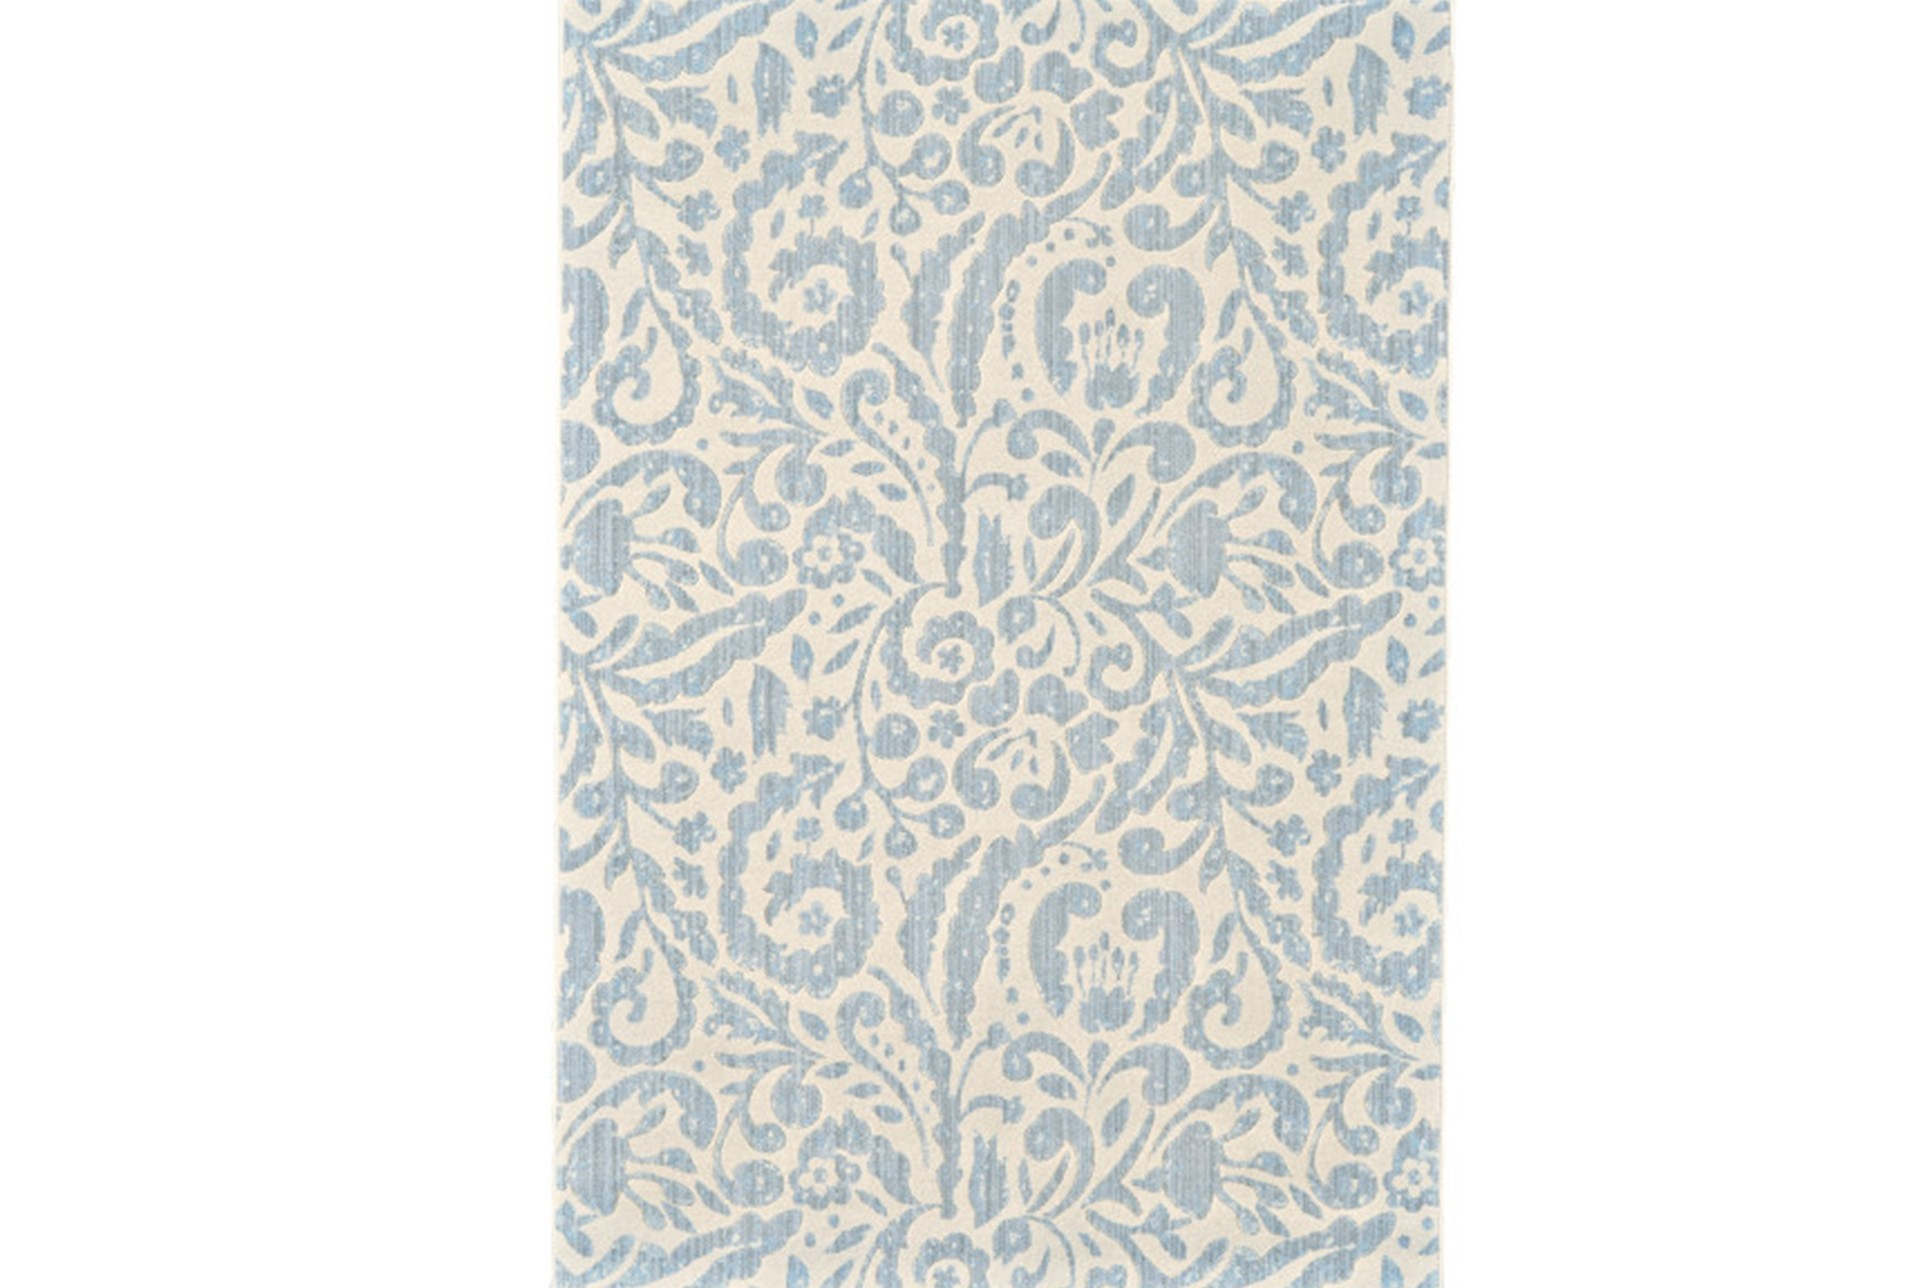 26x48 Rug Light Blue Paisley Floral Living Spaces